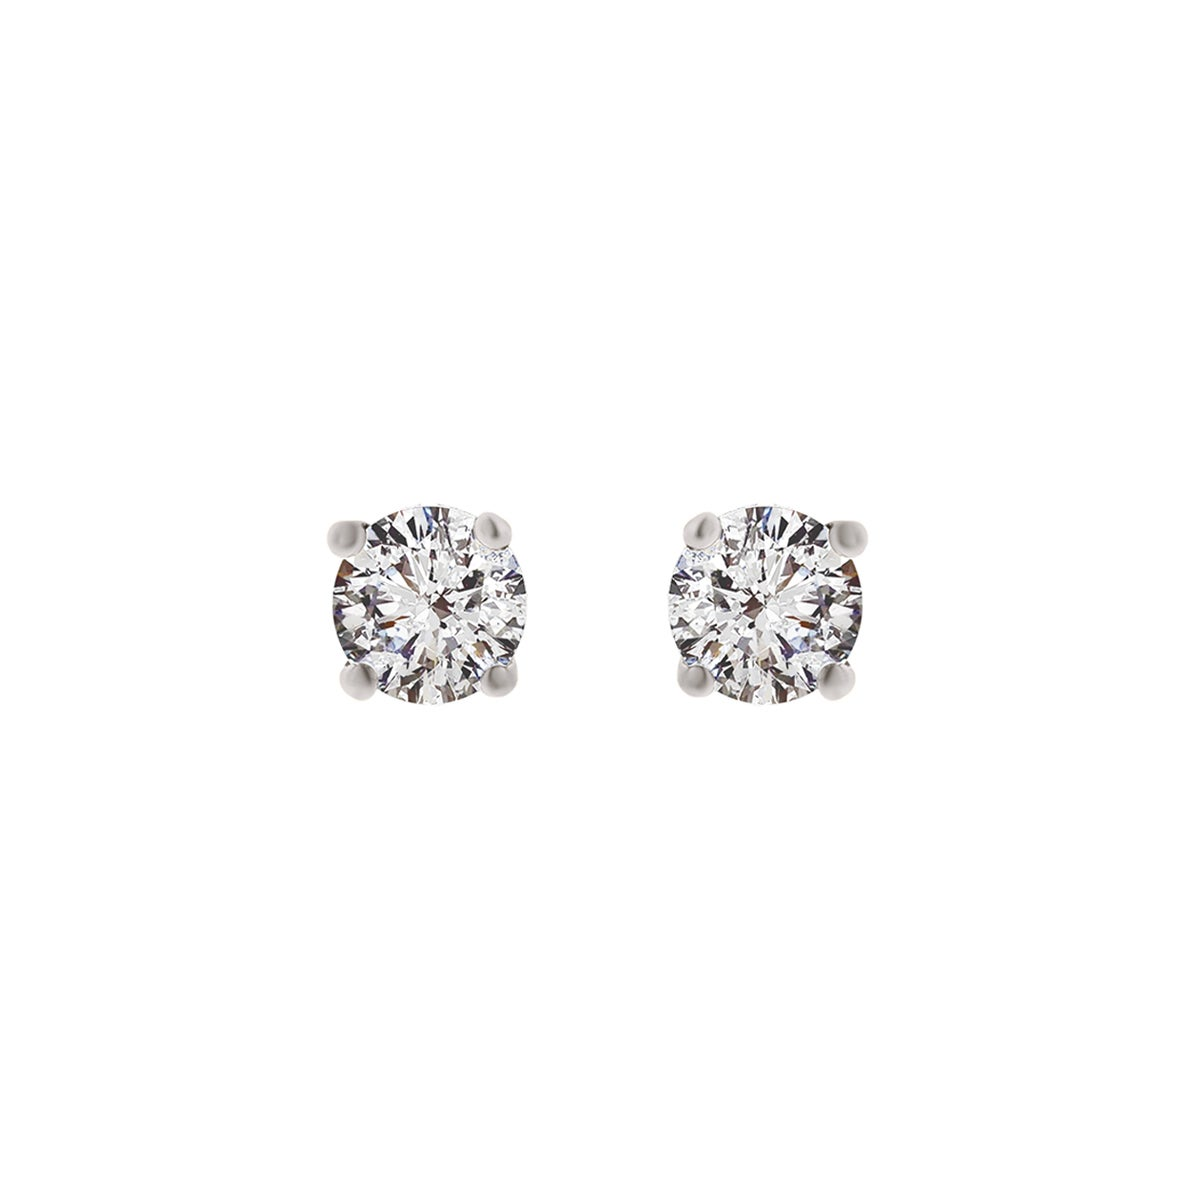 8459e6d55f894 Details about 14K White Gold Diamond Stud Earrings - Round 3/4 CTTW - IGI  Certified